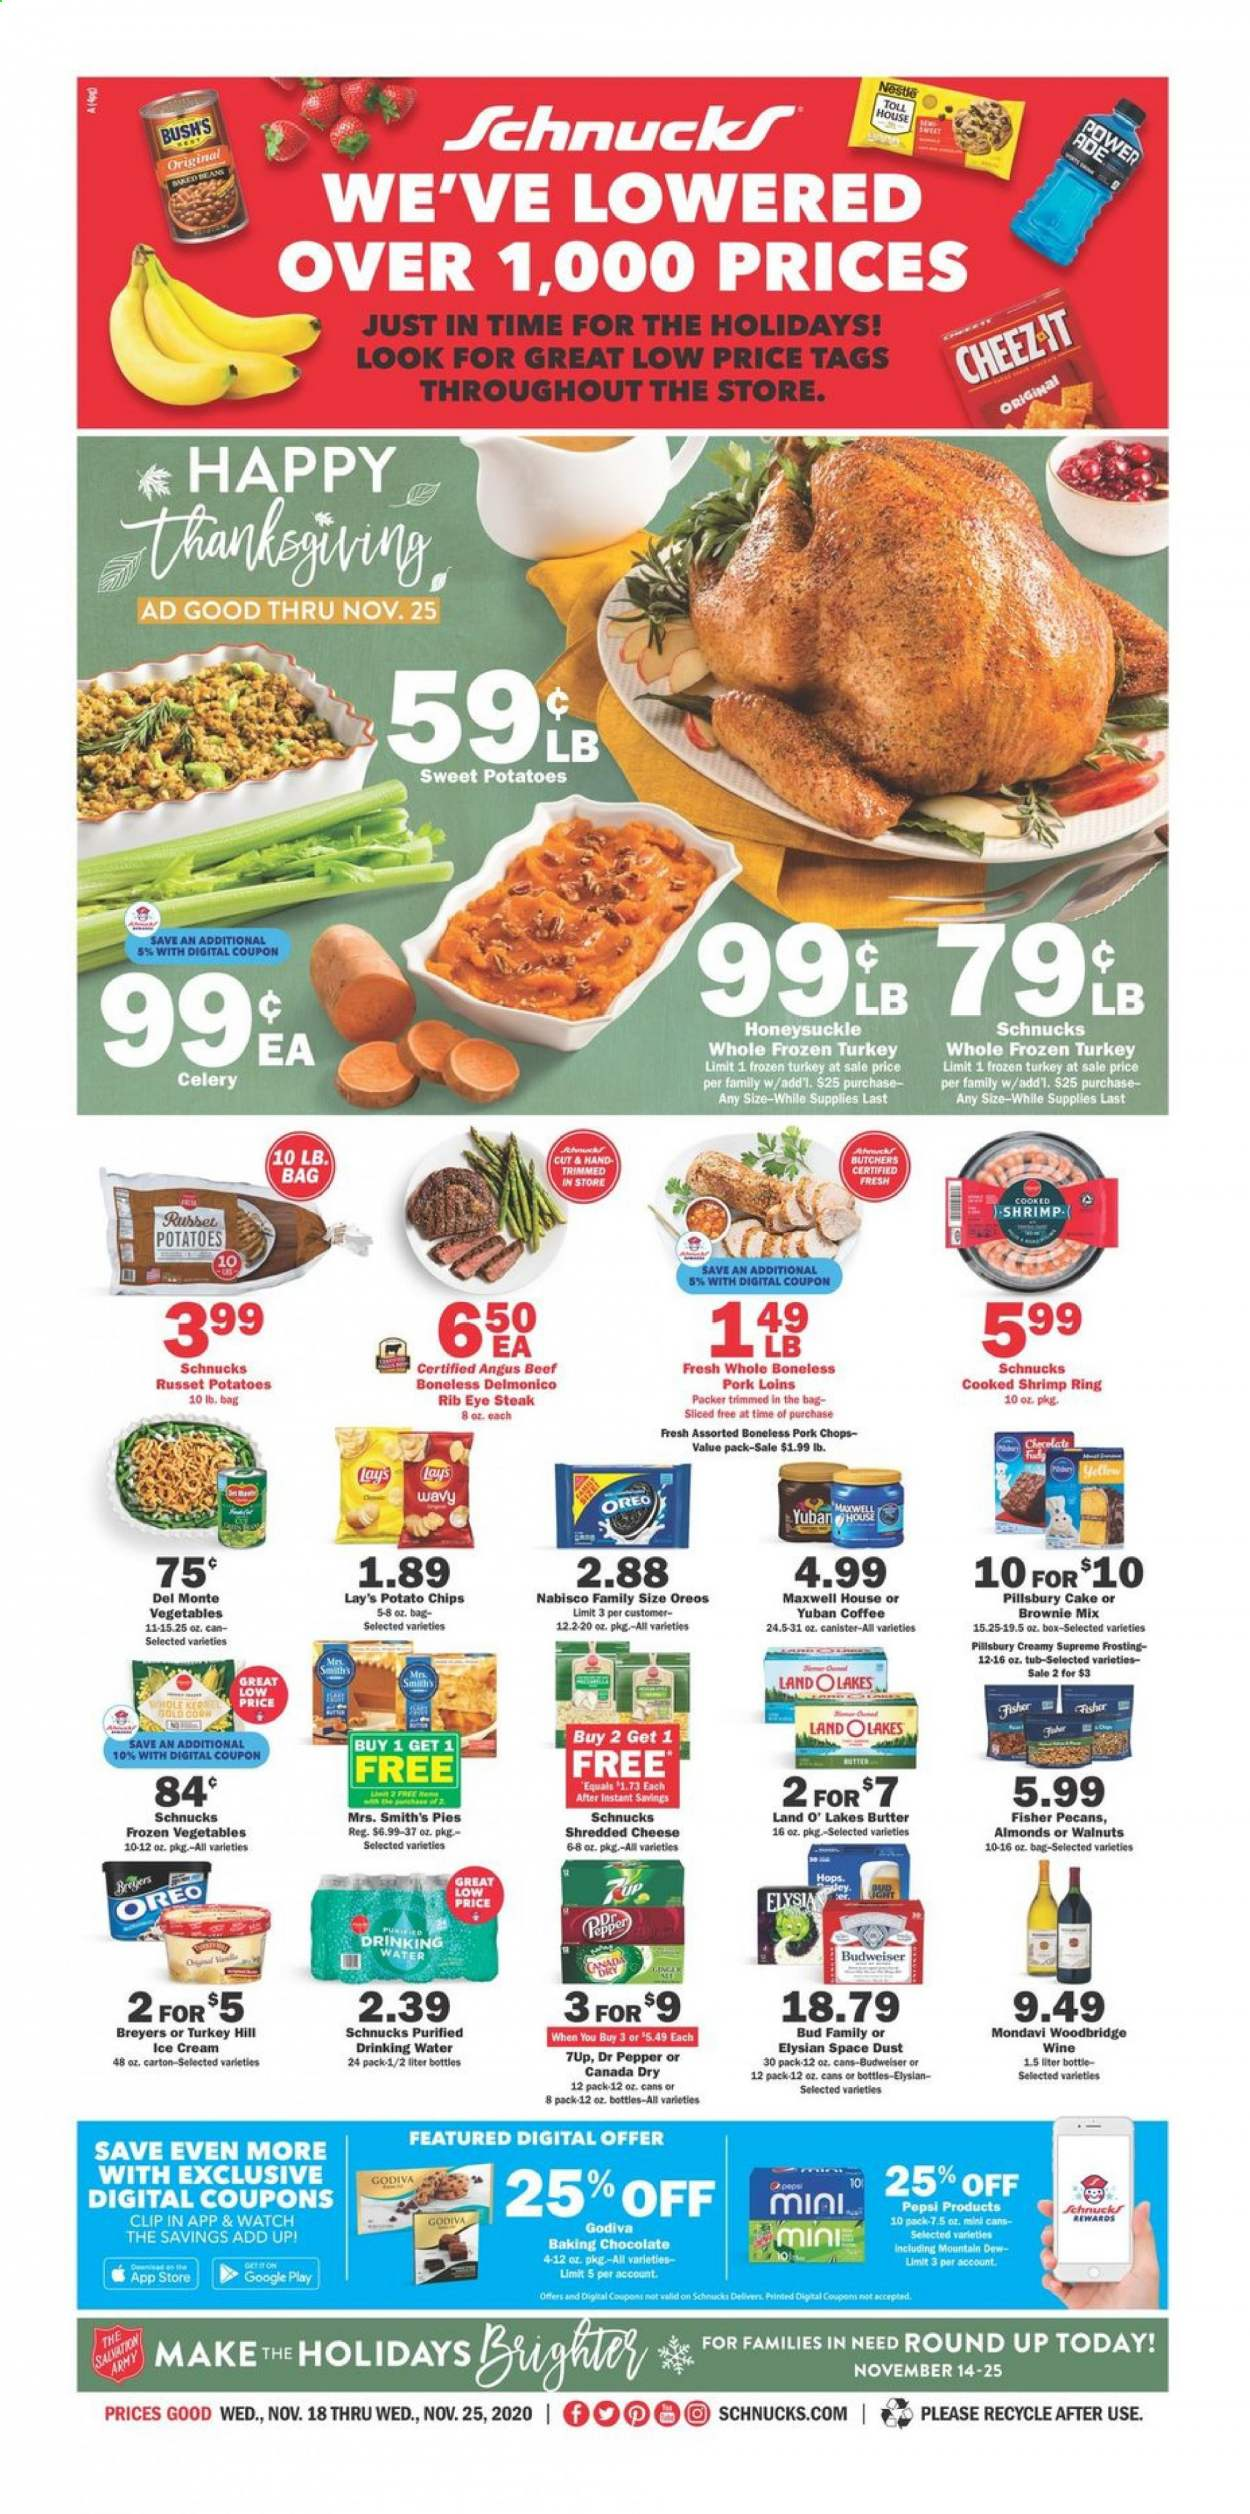 Schnucks Flyer - 11.18.2020 - 11.25.2020 - Sales products - almonds, beef meat, box, brownie mix, Budweiser, butter, Canada Dry, celery, coffee, corn, frosting, frozen turkey, frozen vegetables, Maxwell House, Mountain Dew, Nestlé, russet potatoes, shredded cheese, sweet potatoes, turkey, walnuts, watch, ice cream, pillsbury cake, pork chops, pork meat, potato chips, potatoes, pecans, Pepsi, Oreo, chips, chocolate, steak, cheese, cake, Vegetables, pepper, Lay's, wine, canister, tub, brownie, shrimps, vegetable, Godiva. Page 1.